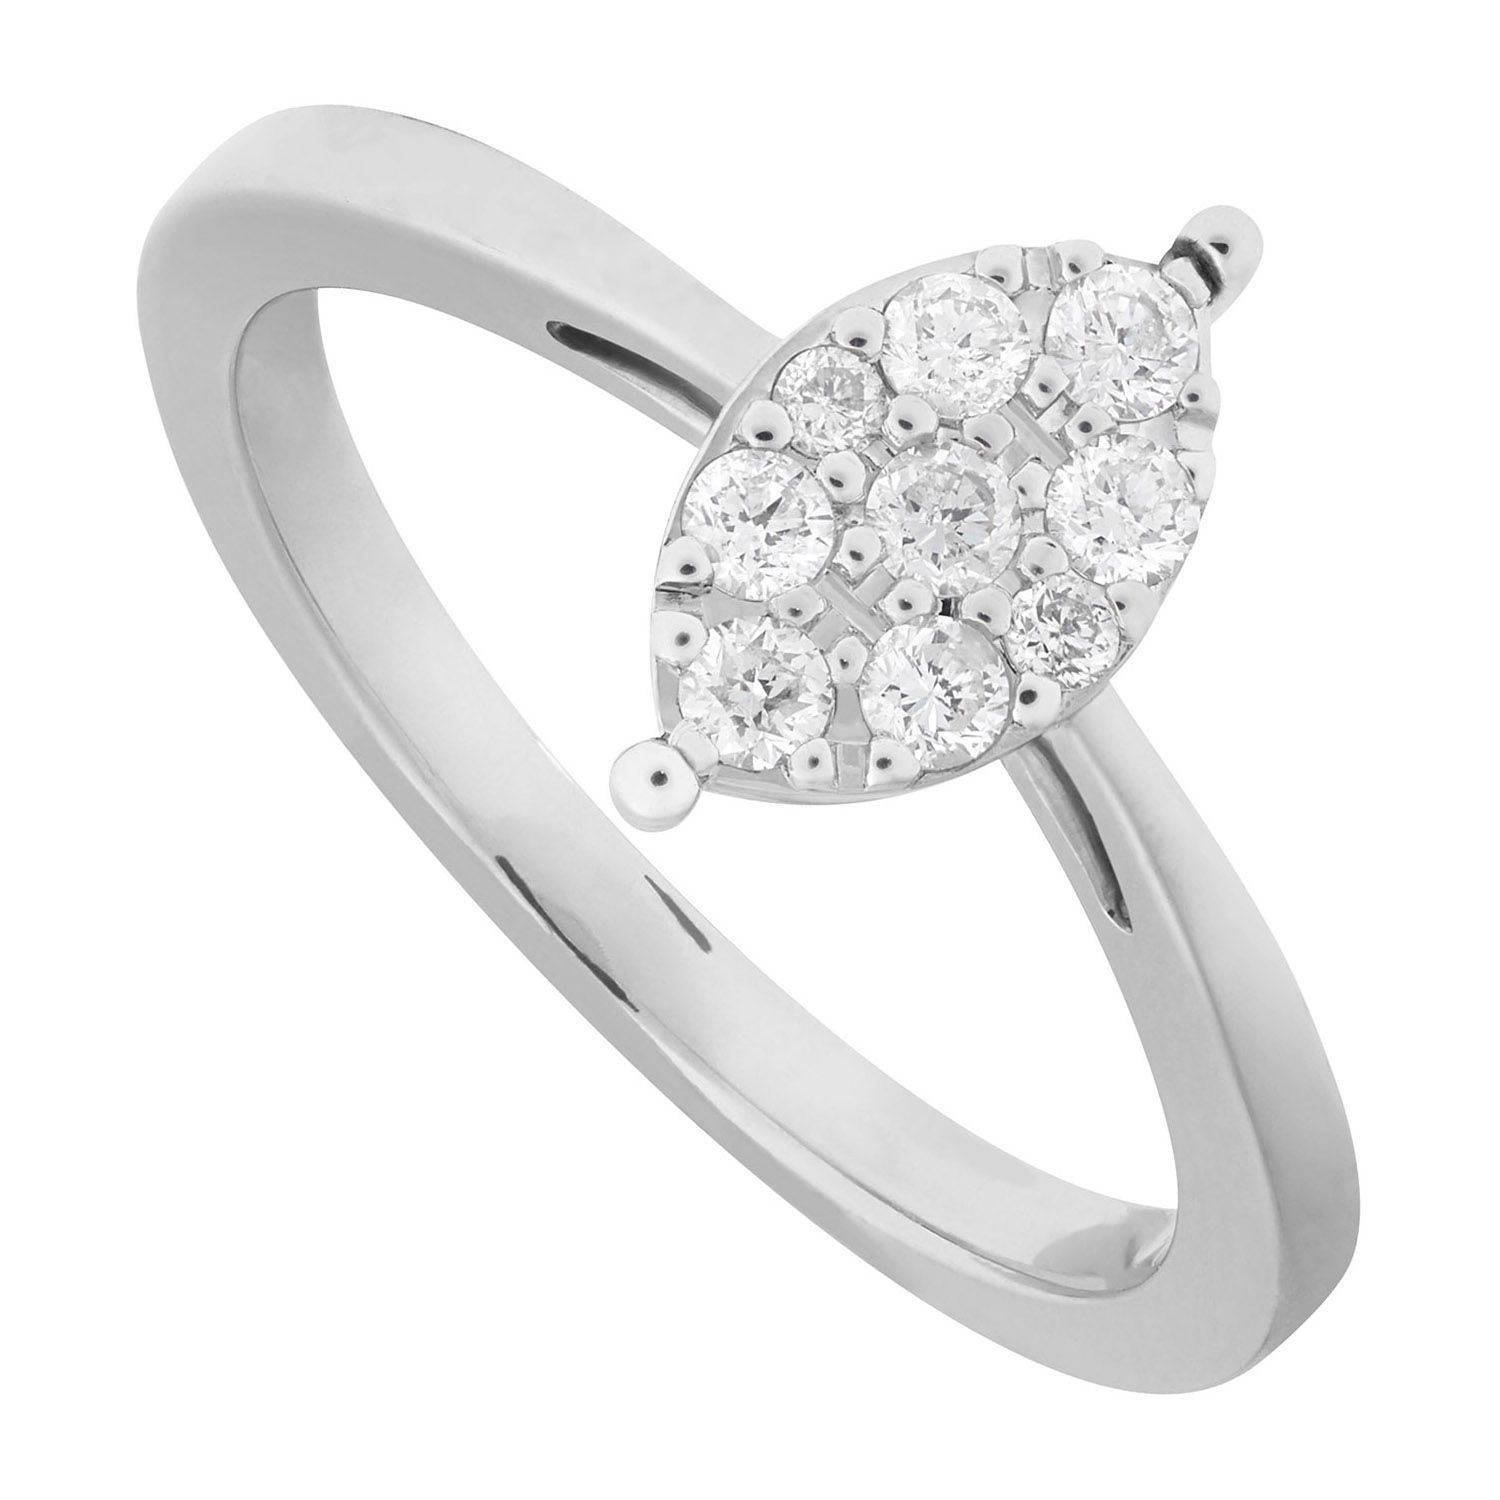 Pin by Alexandra on Rings 20 carat diamond, Marquise ring